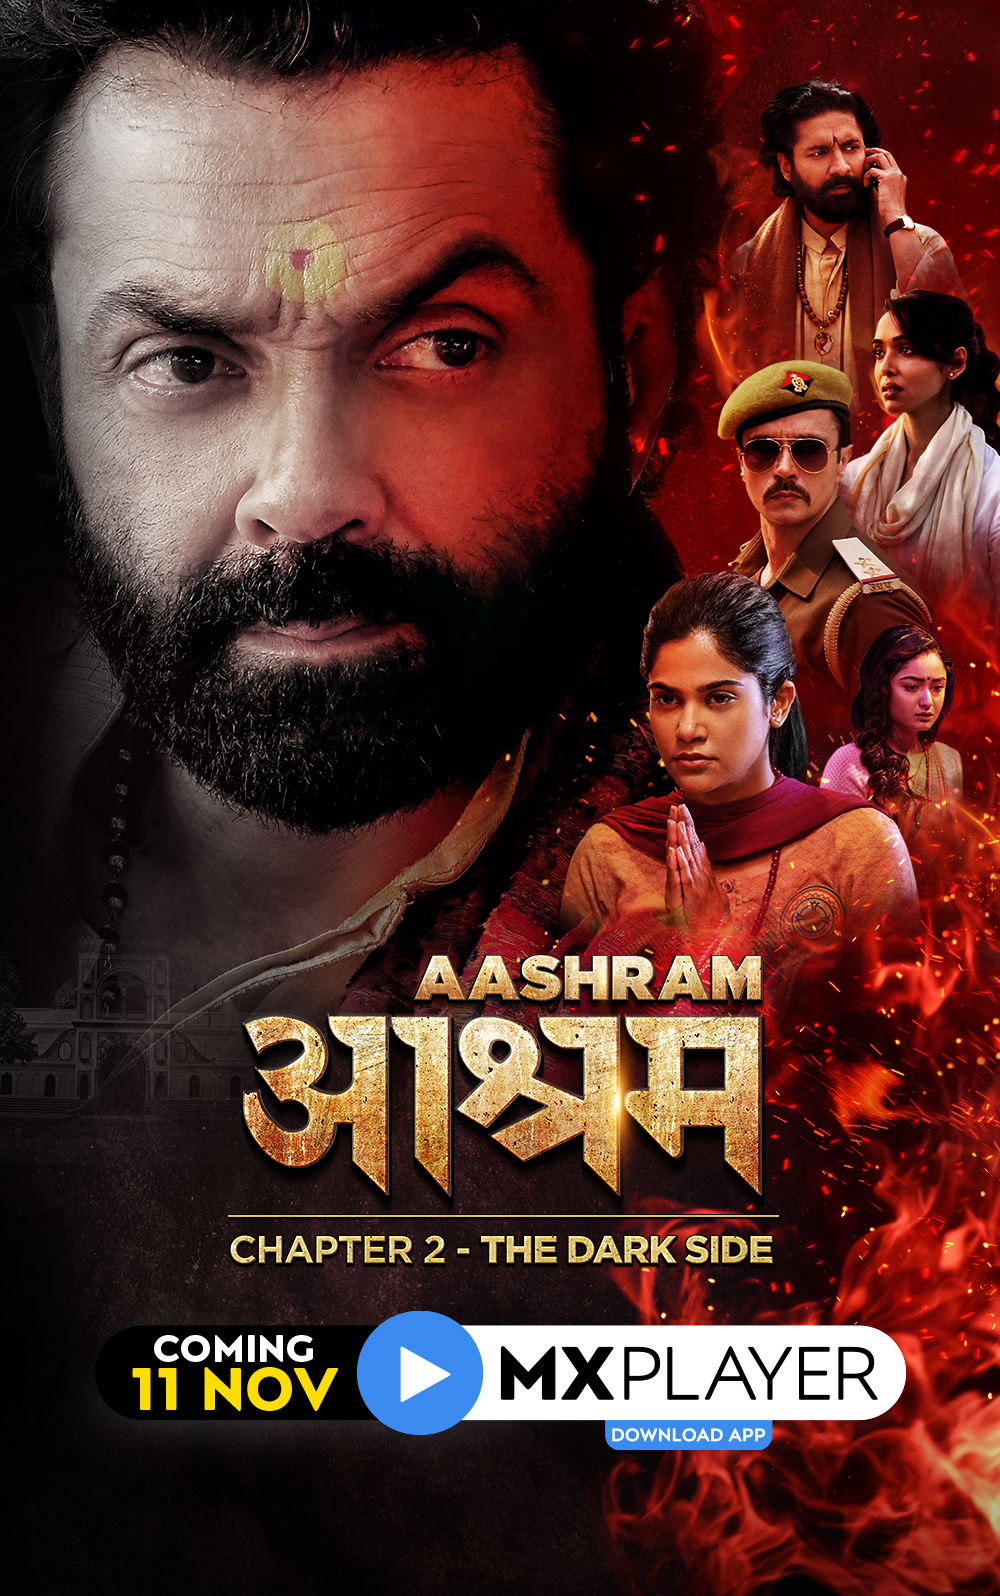 Aashram Chapter 2: The Dark Side 2020 S02 Hindi MX Player Original Complete Web Series 480p HDRip 1.4GB Download